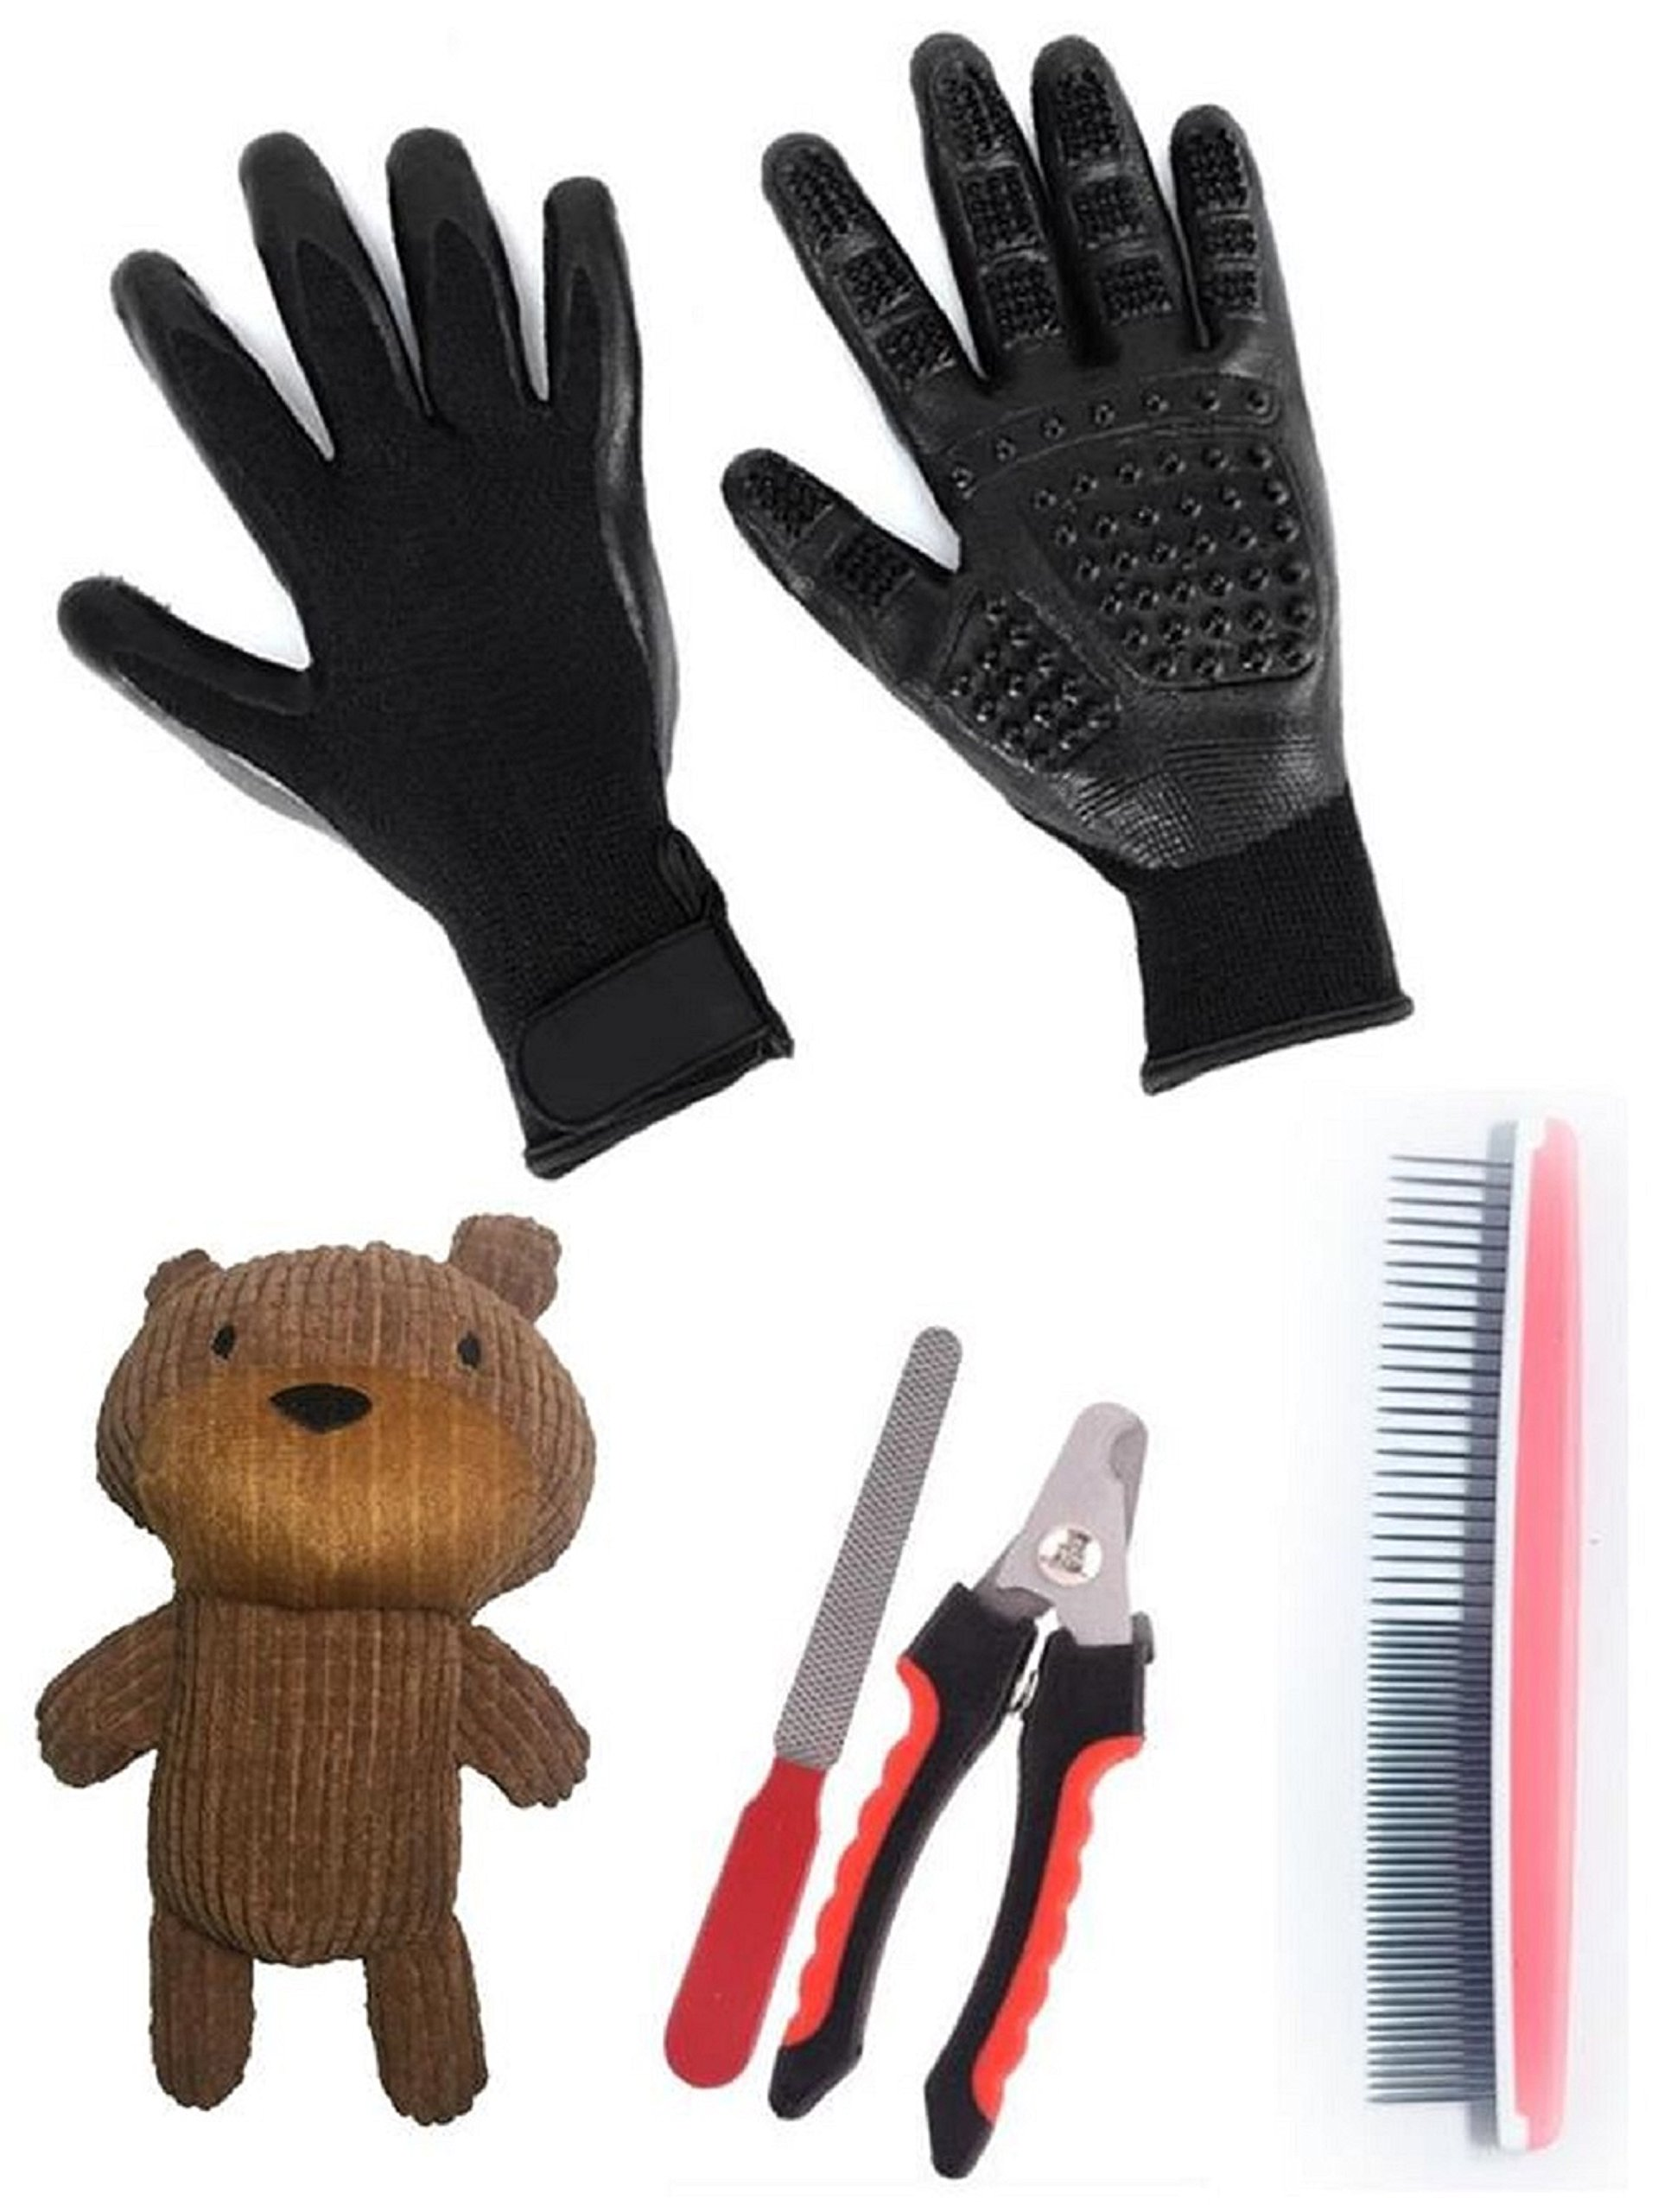 Deluxe Groom & Play Pet Set - High quality Dog/Cat Grooming Gloves - Nail Clipper/file - SS Comb - Honey Bear Squeak Toy